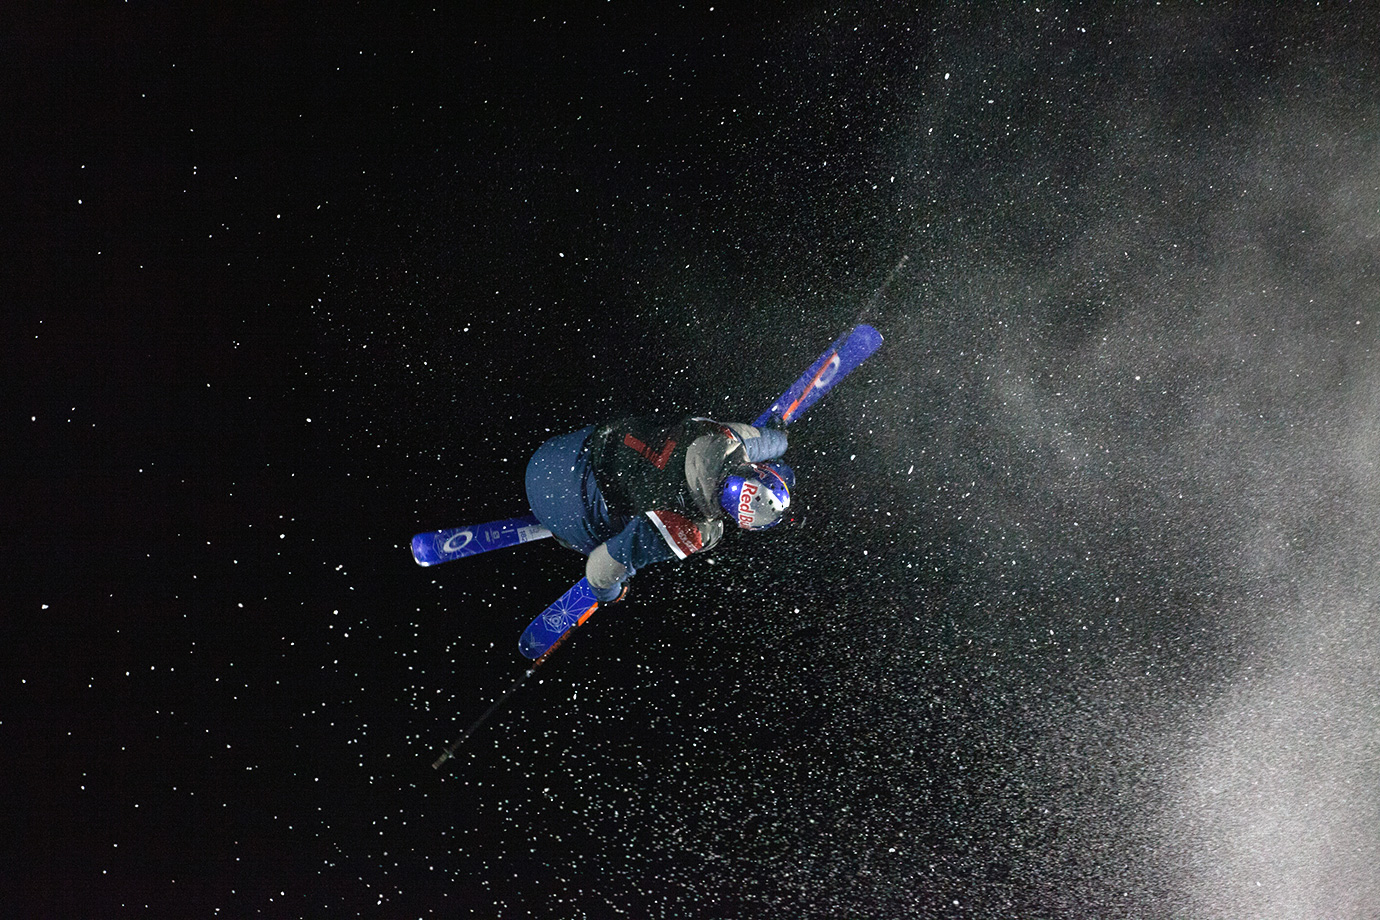 Oscar Wester leaves a trail of powder in his wake during his second run of the Big Air ski final.